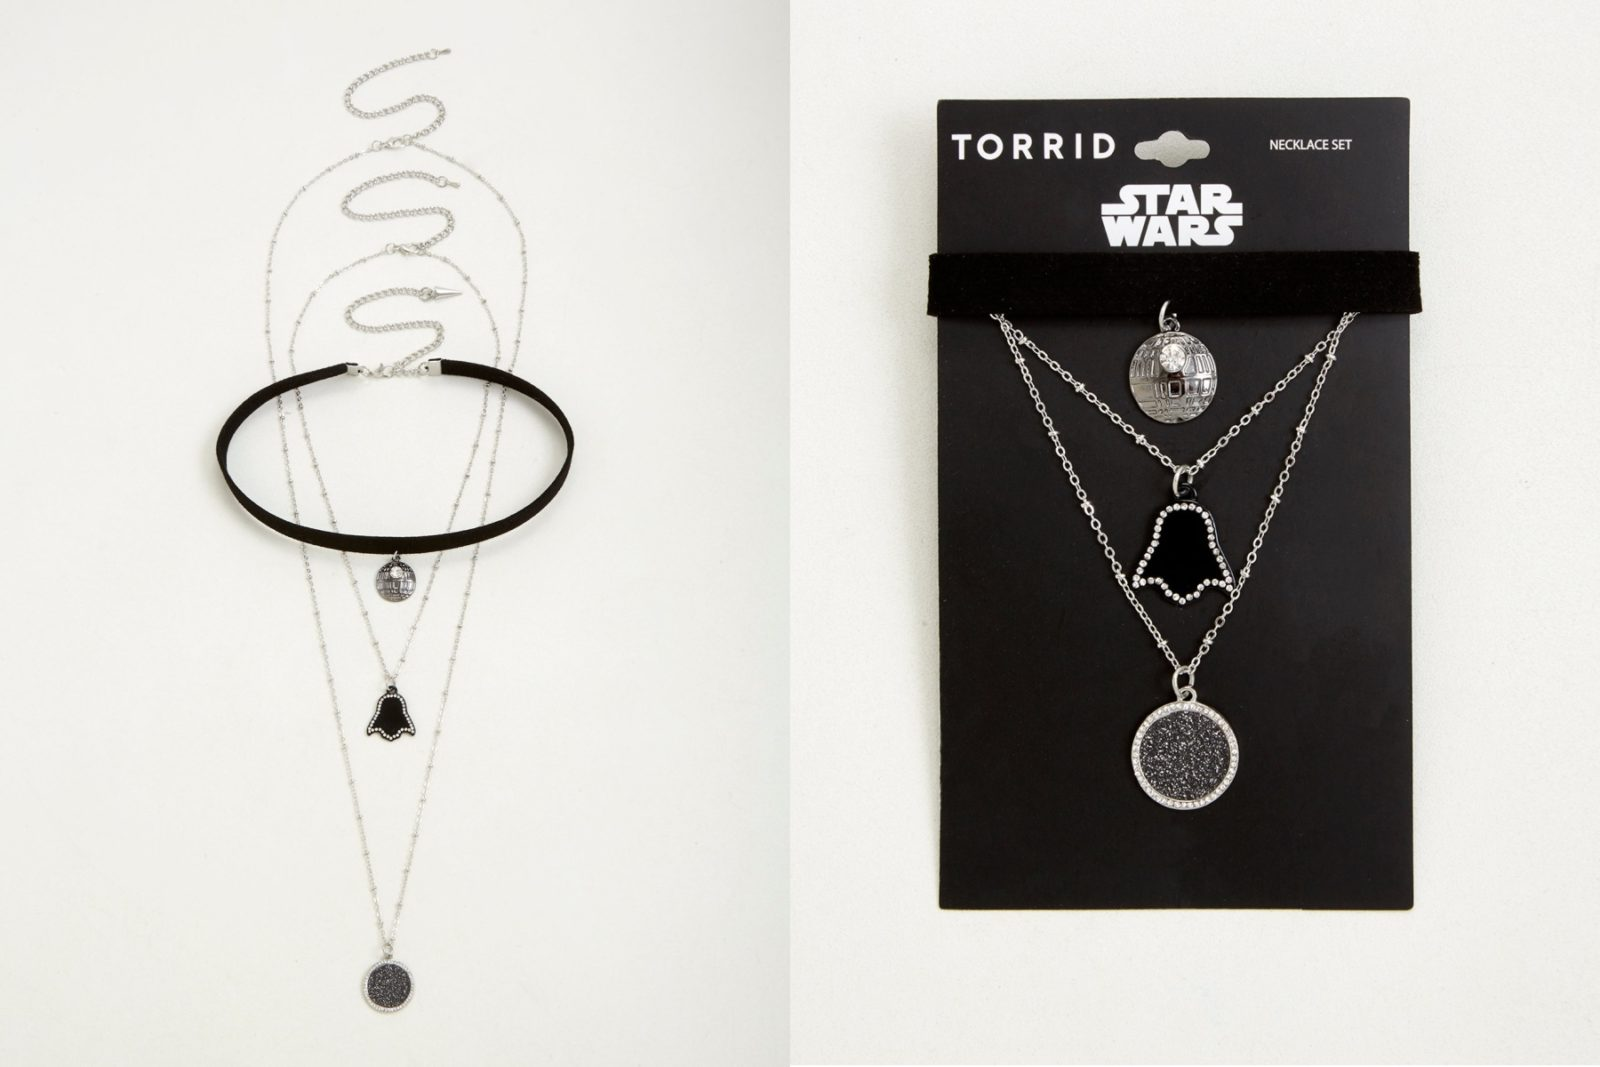 Star Wars Layered Choker Necklace Set